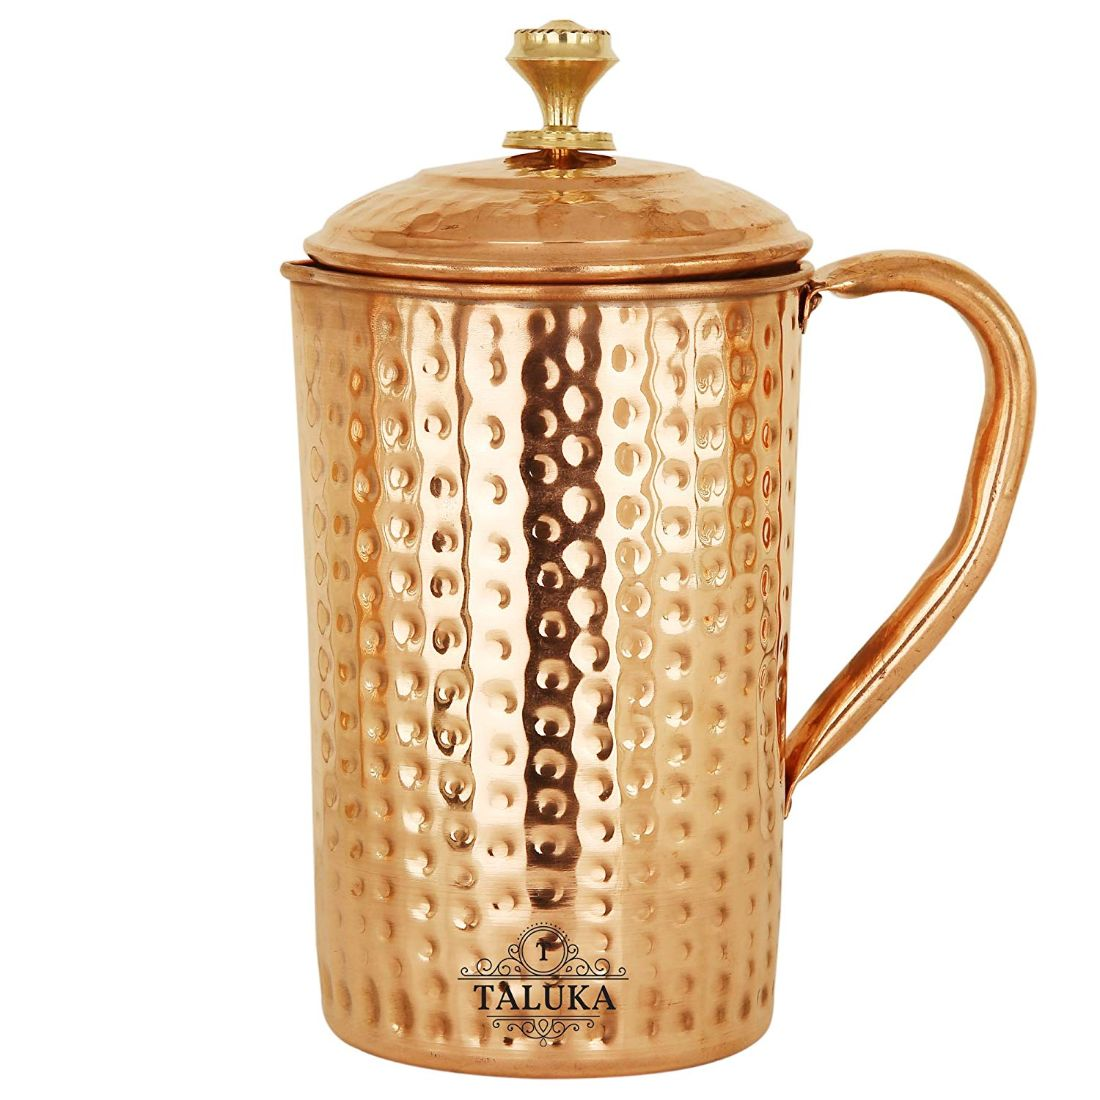 Copper Hammer Jug Pitcher 1.7 Liter With Water Pot 10 Liter Tank 1 Glass 350 ML